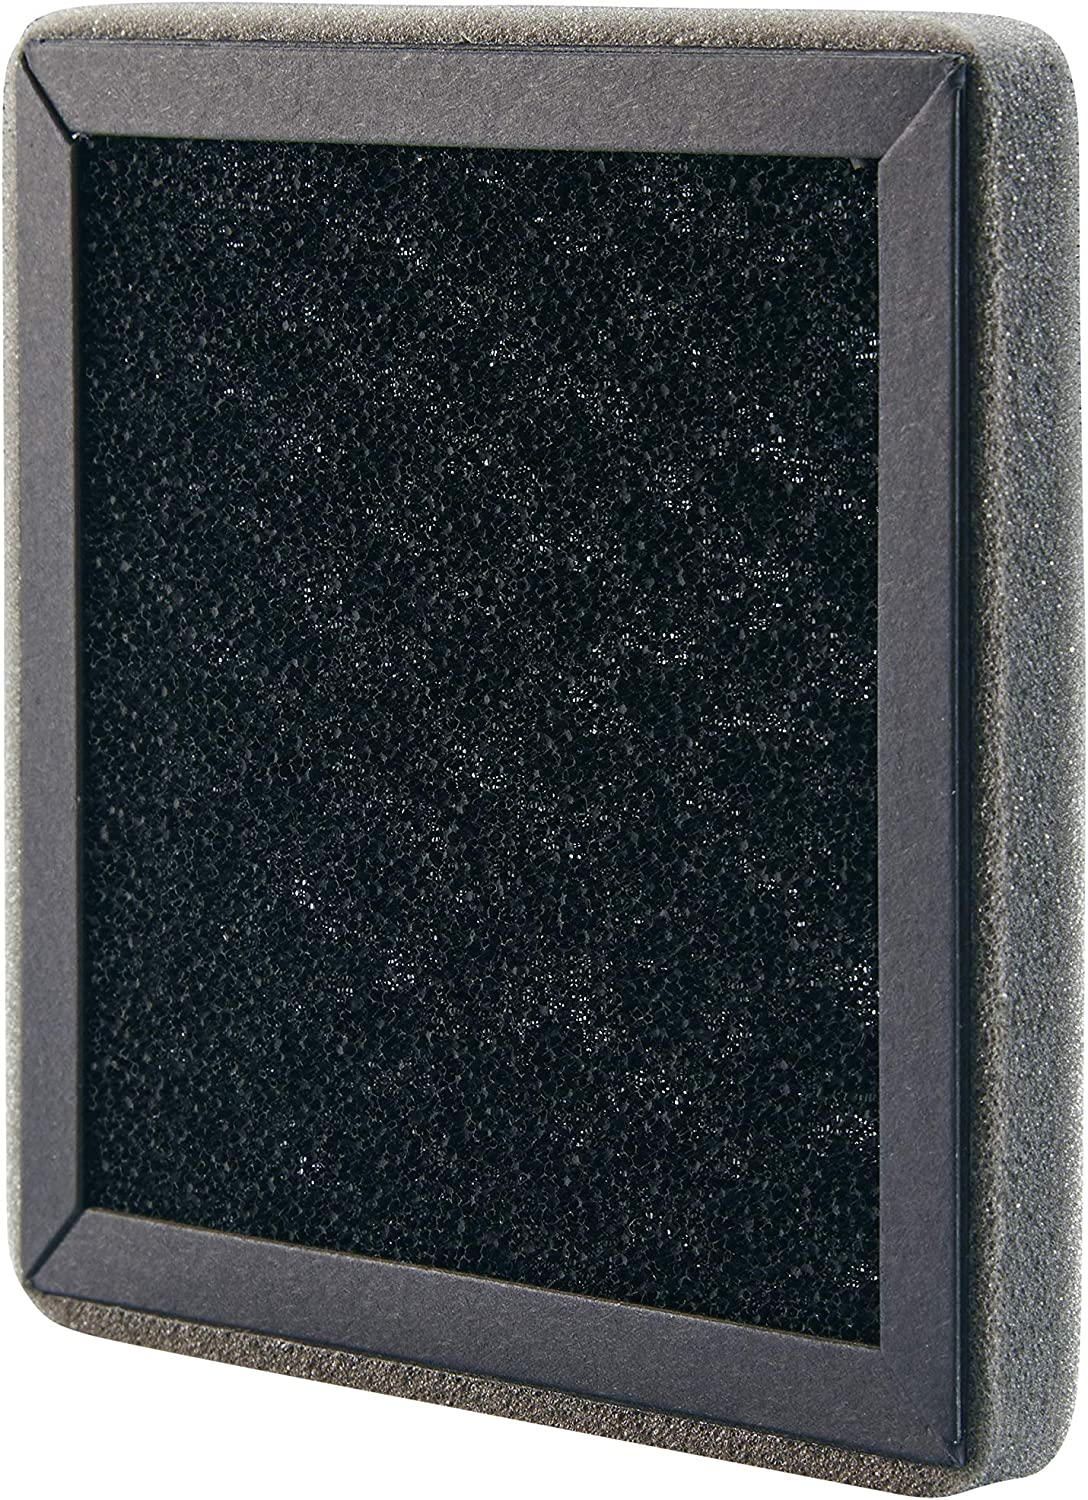 Activated Carbon sfyd Air Purifier Replacement Filter